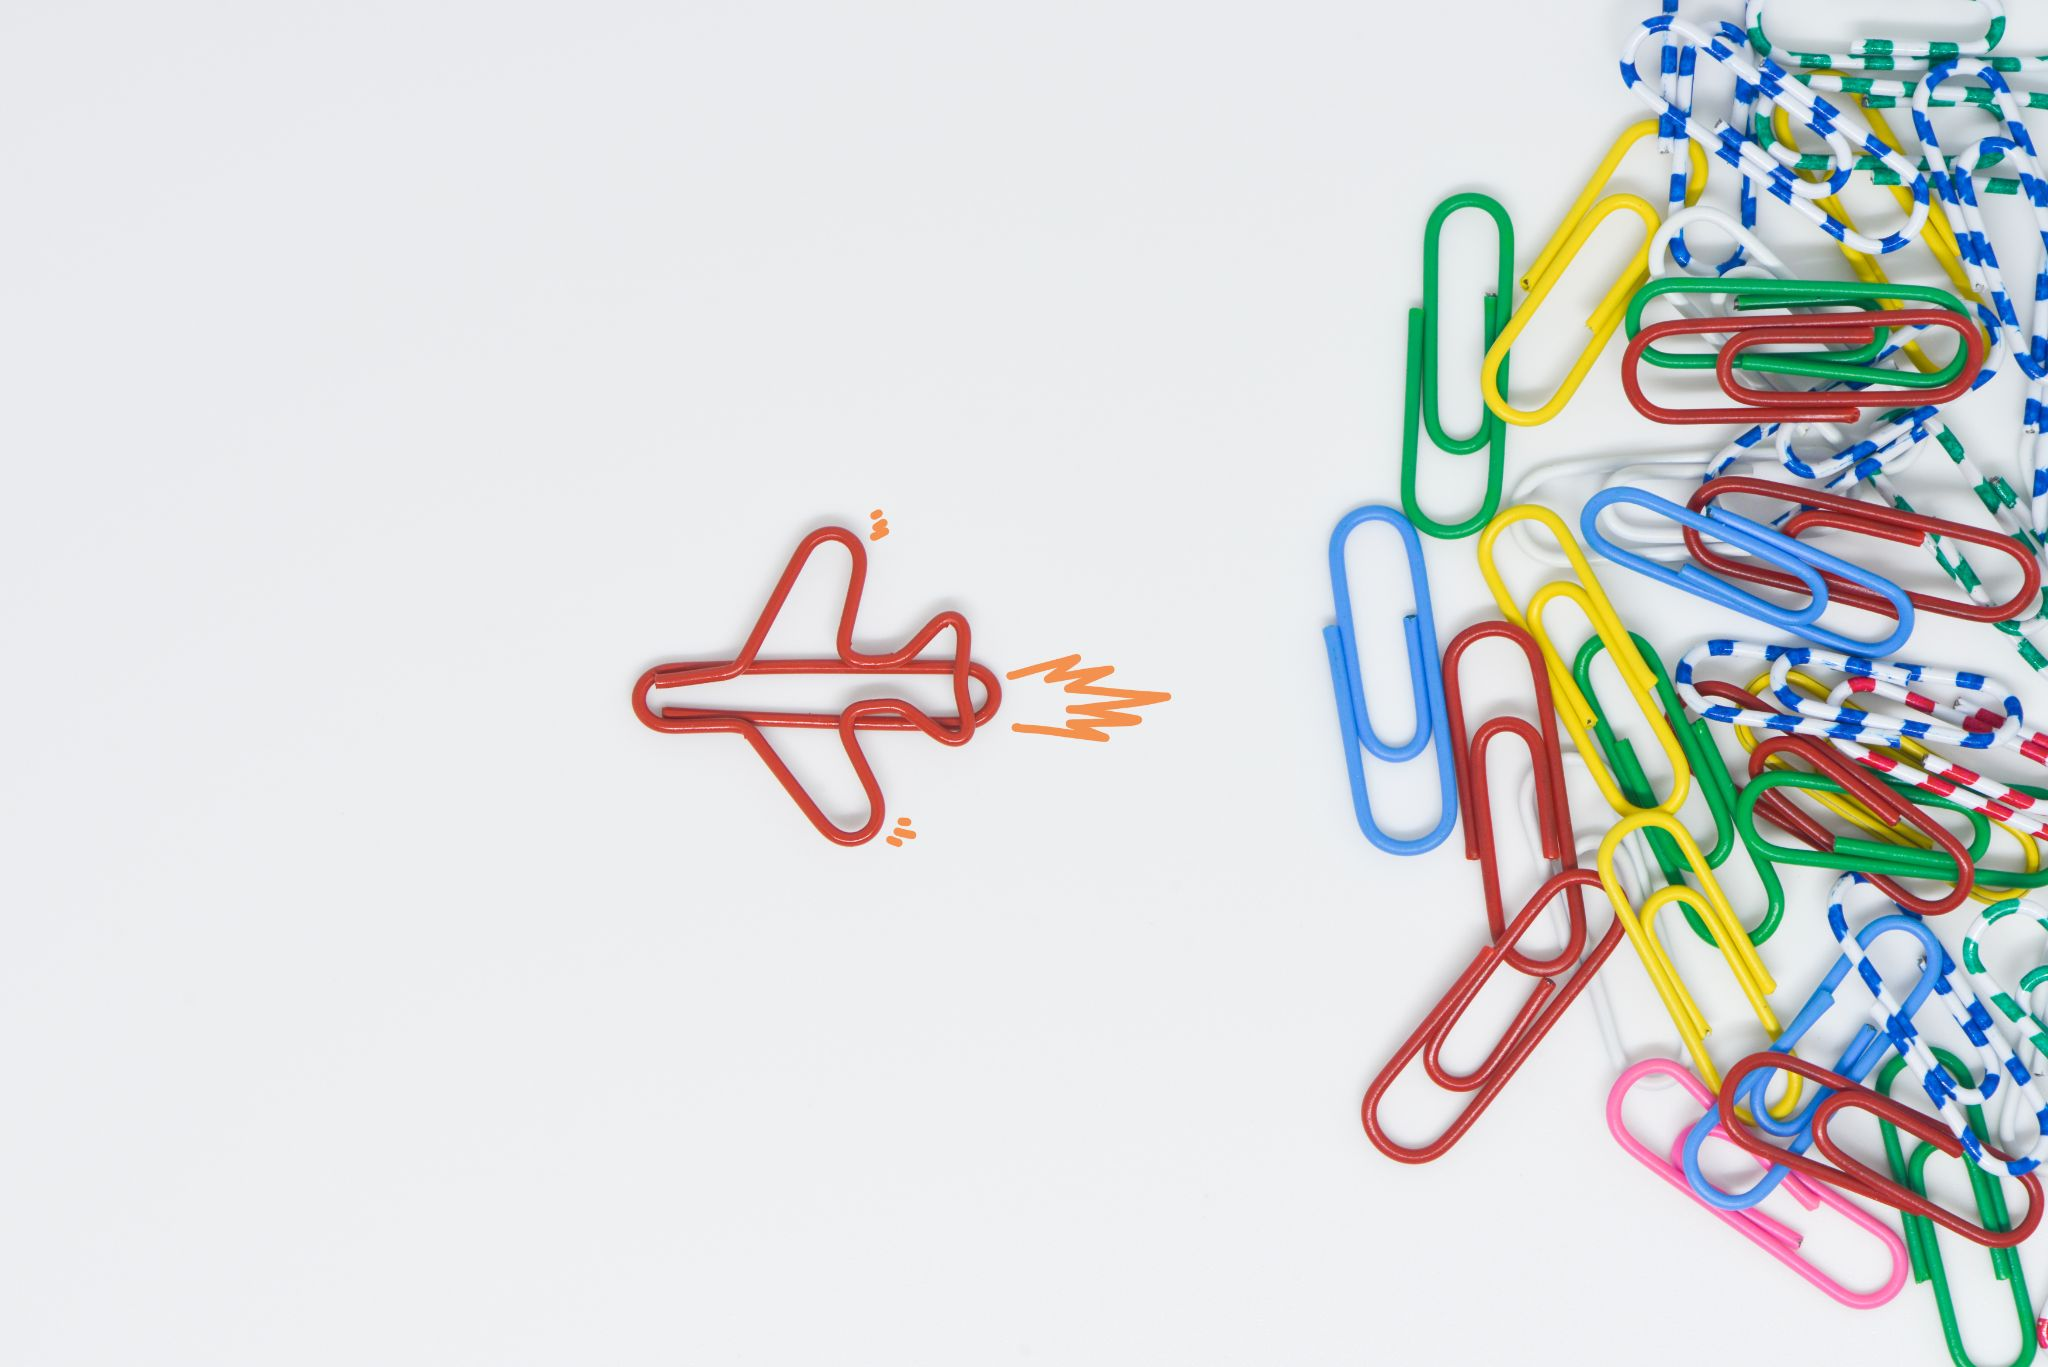 Paperclips in all different colours like red, blue, pink, green, yellow and striped. One red paperclip is formed into a plane and is flying away from the other paperclips